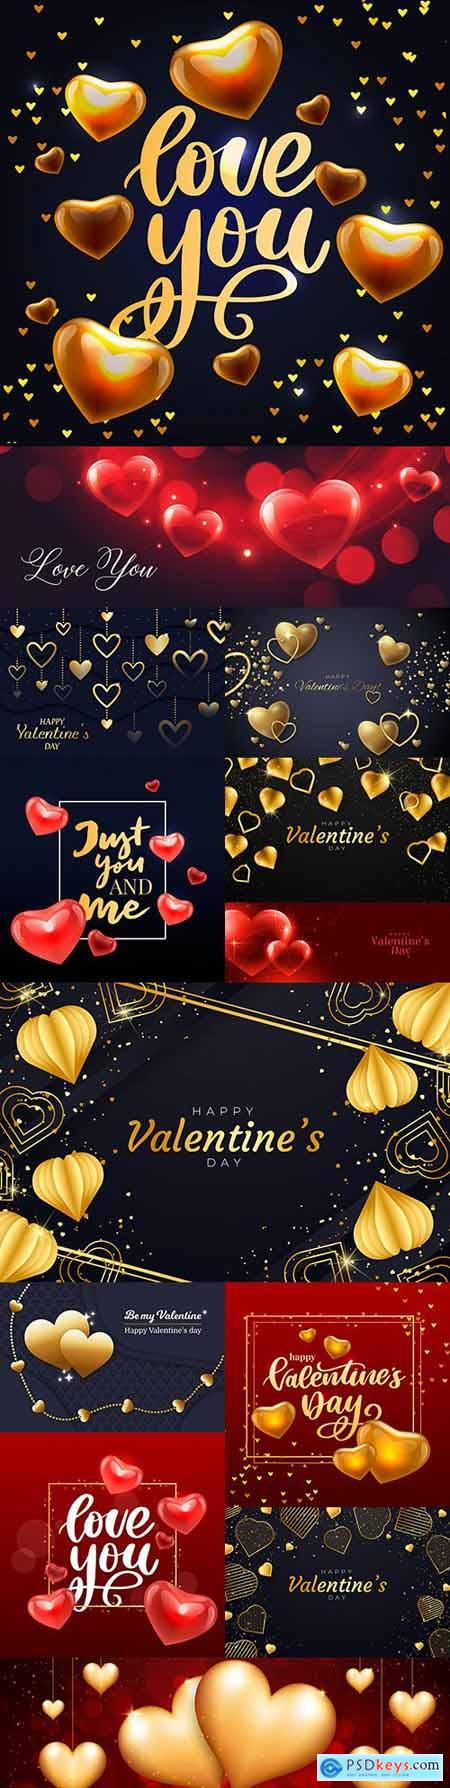 Valentines Day romantic golden hearts and elements illustration